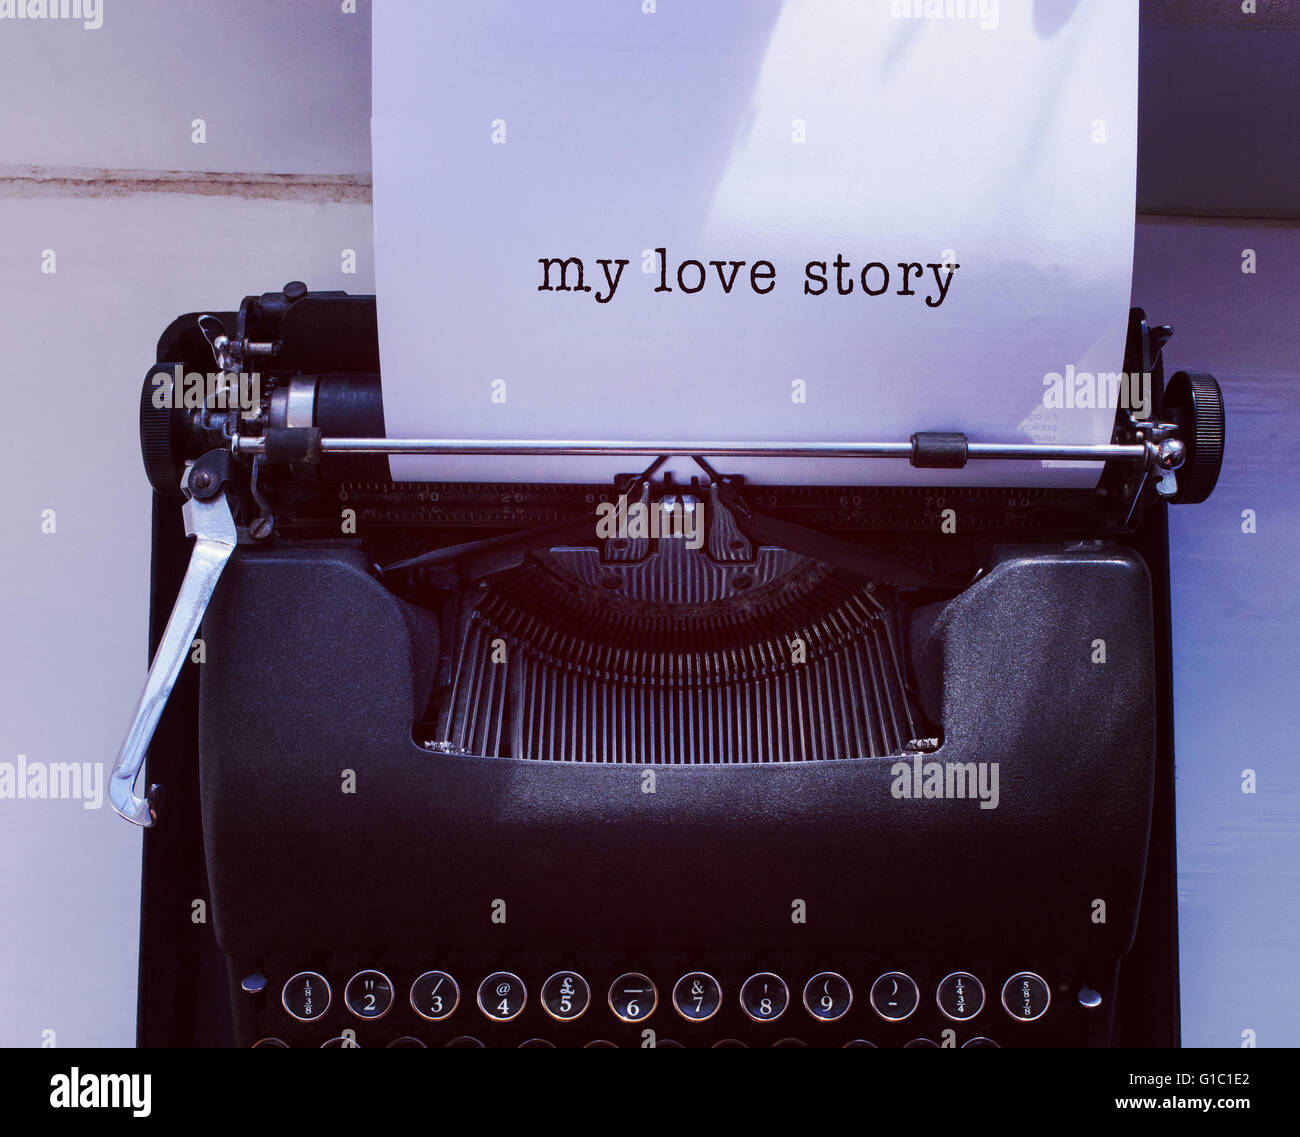 Composite image of my love story message on a white background - Stock Image